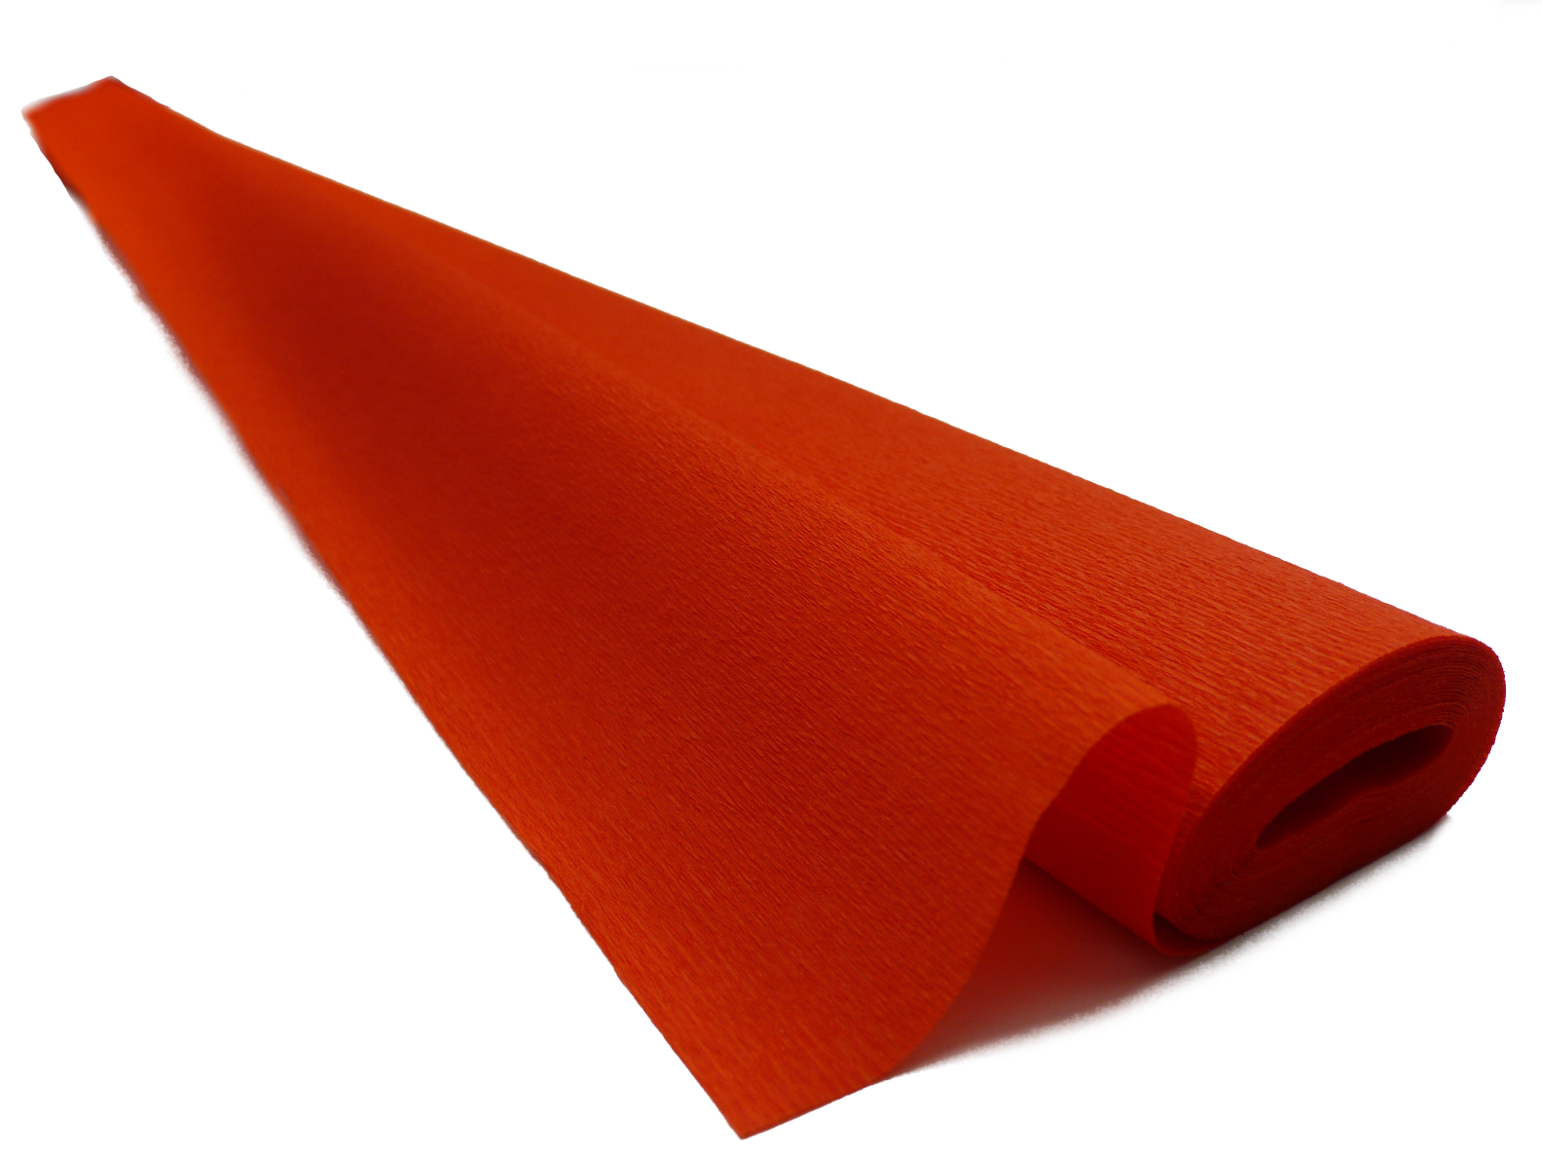 Italian Crepe Paper roll 60 gram - 306 INTENSE DARK ORANGE